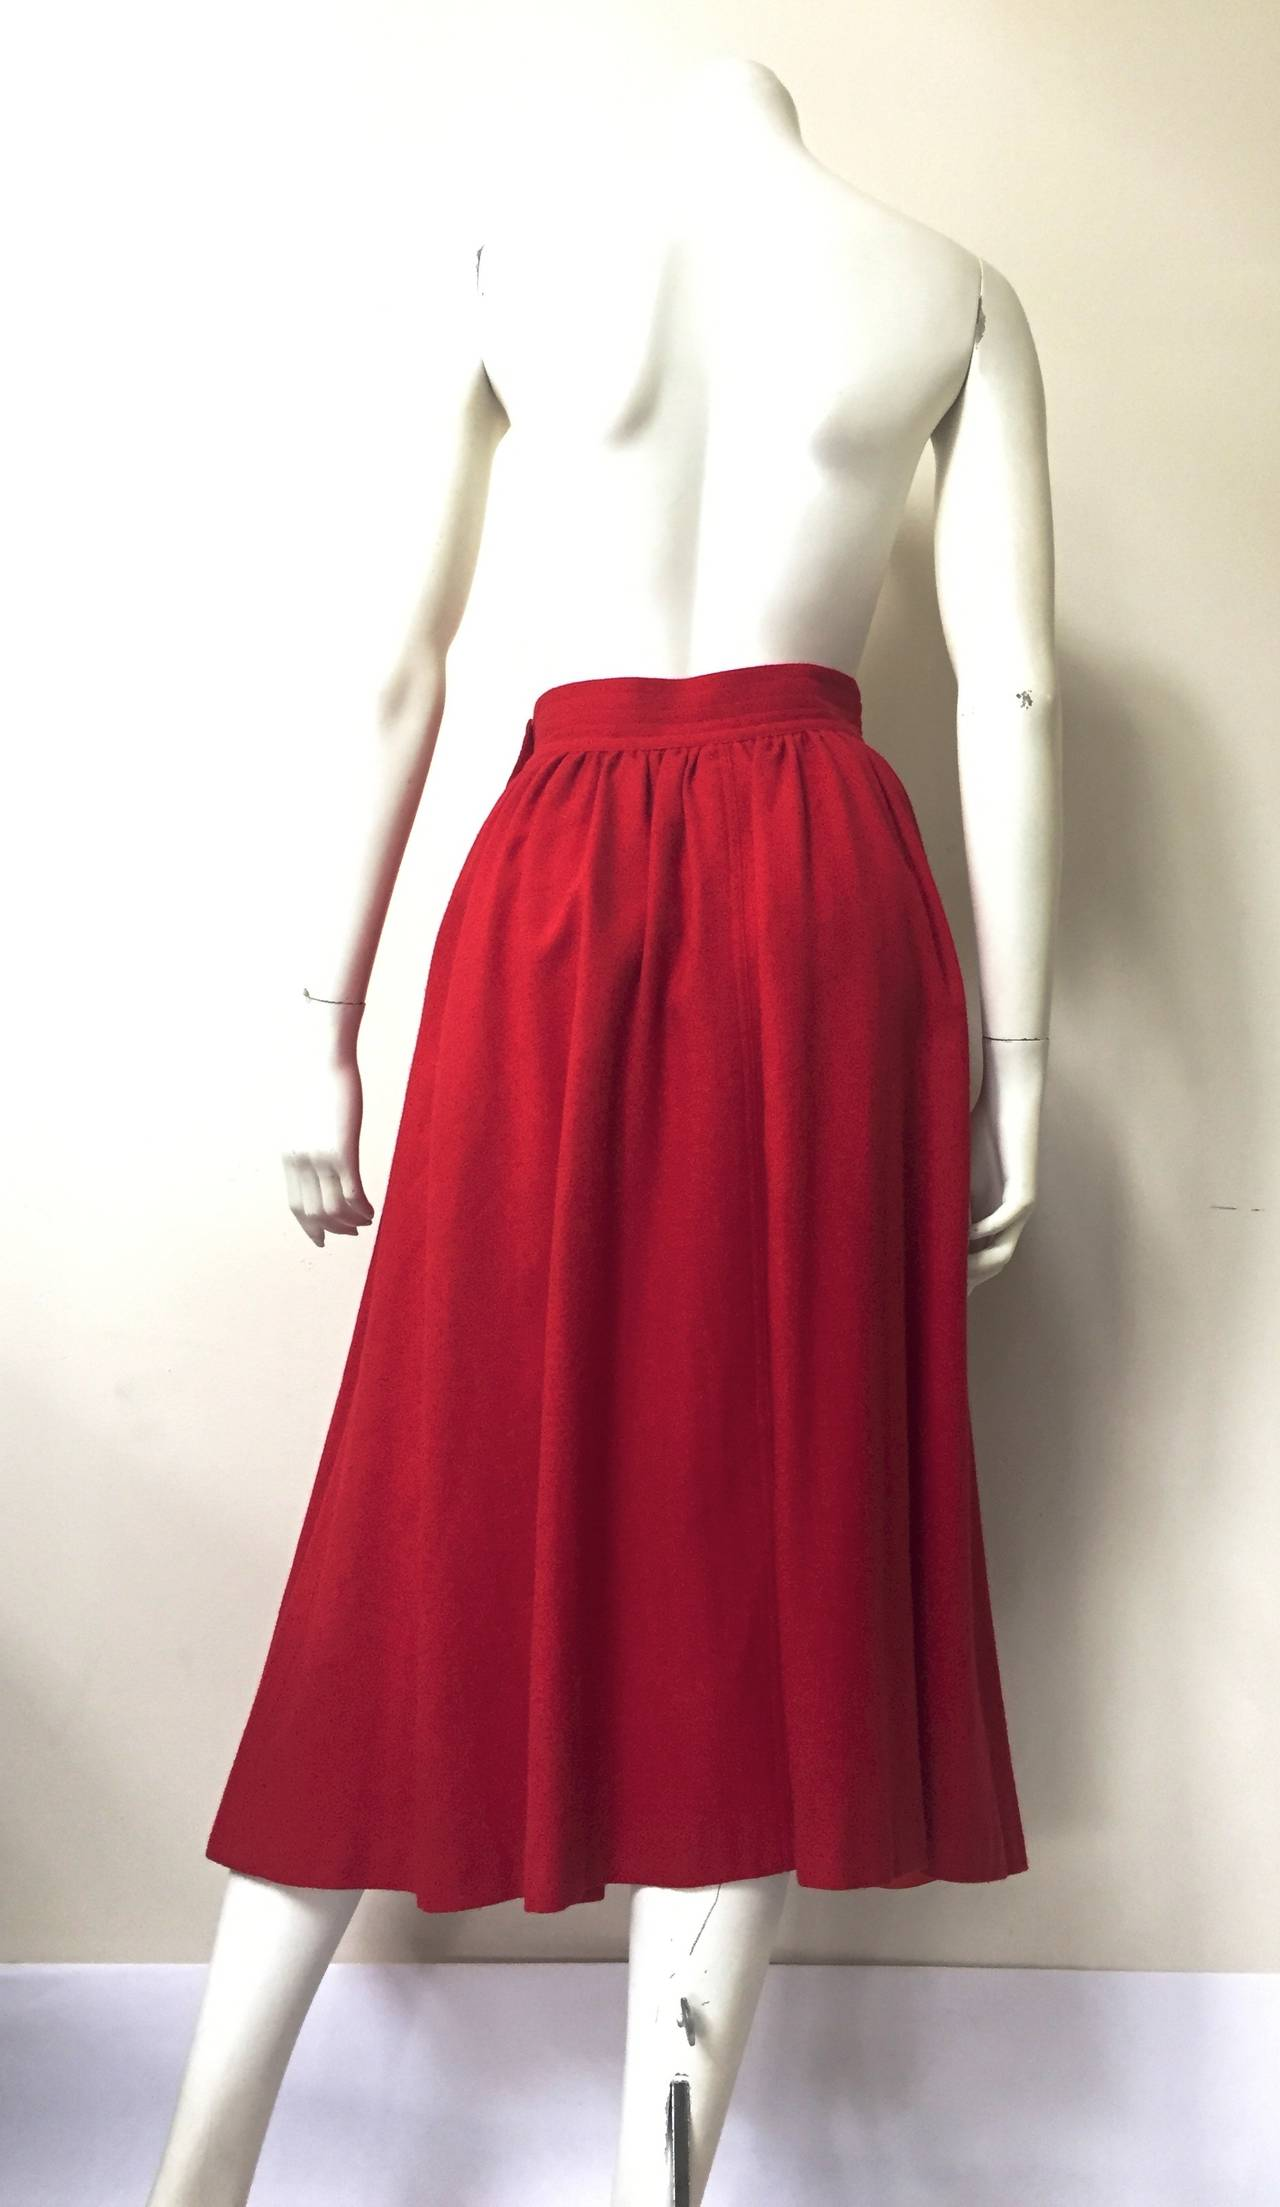 Saint Laurent Rive Gauche 70s red skirt size 4. 5